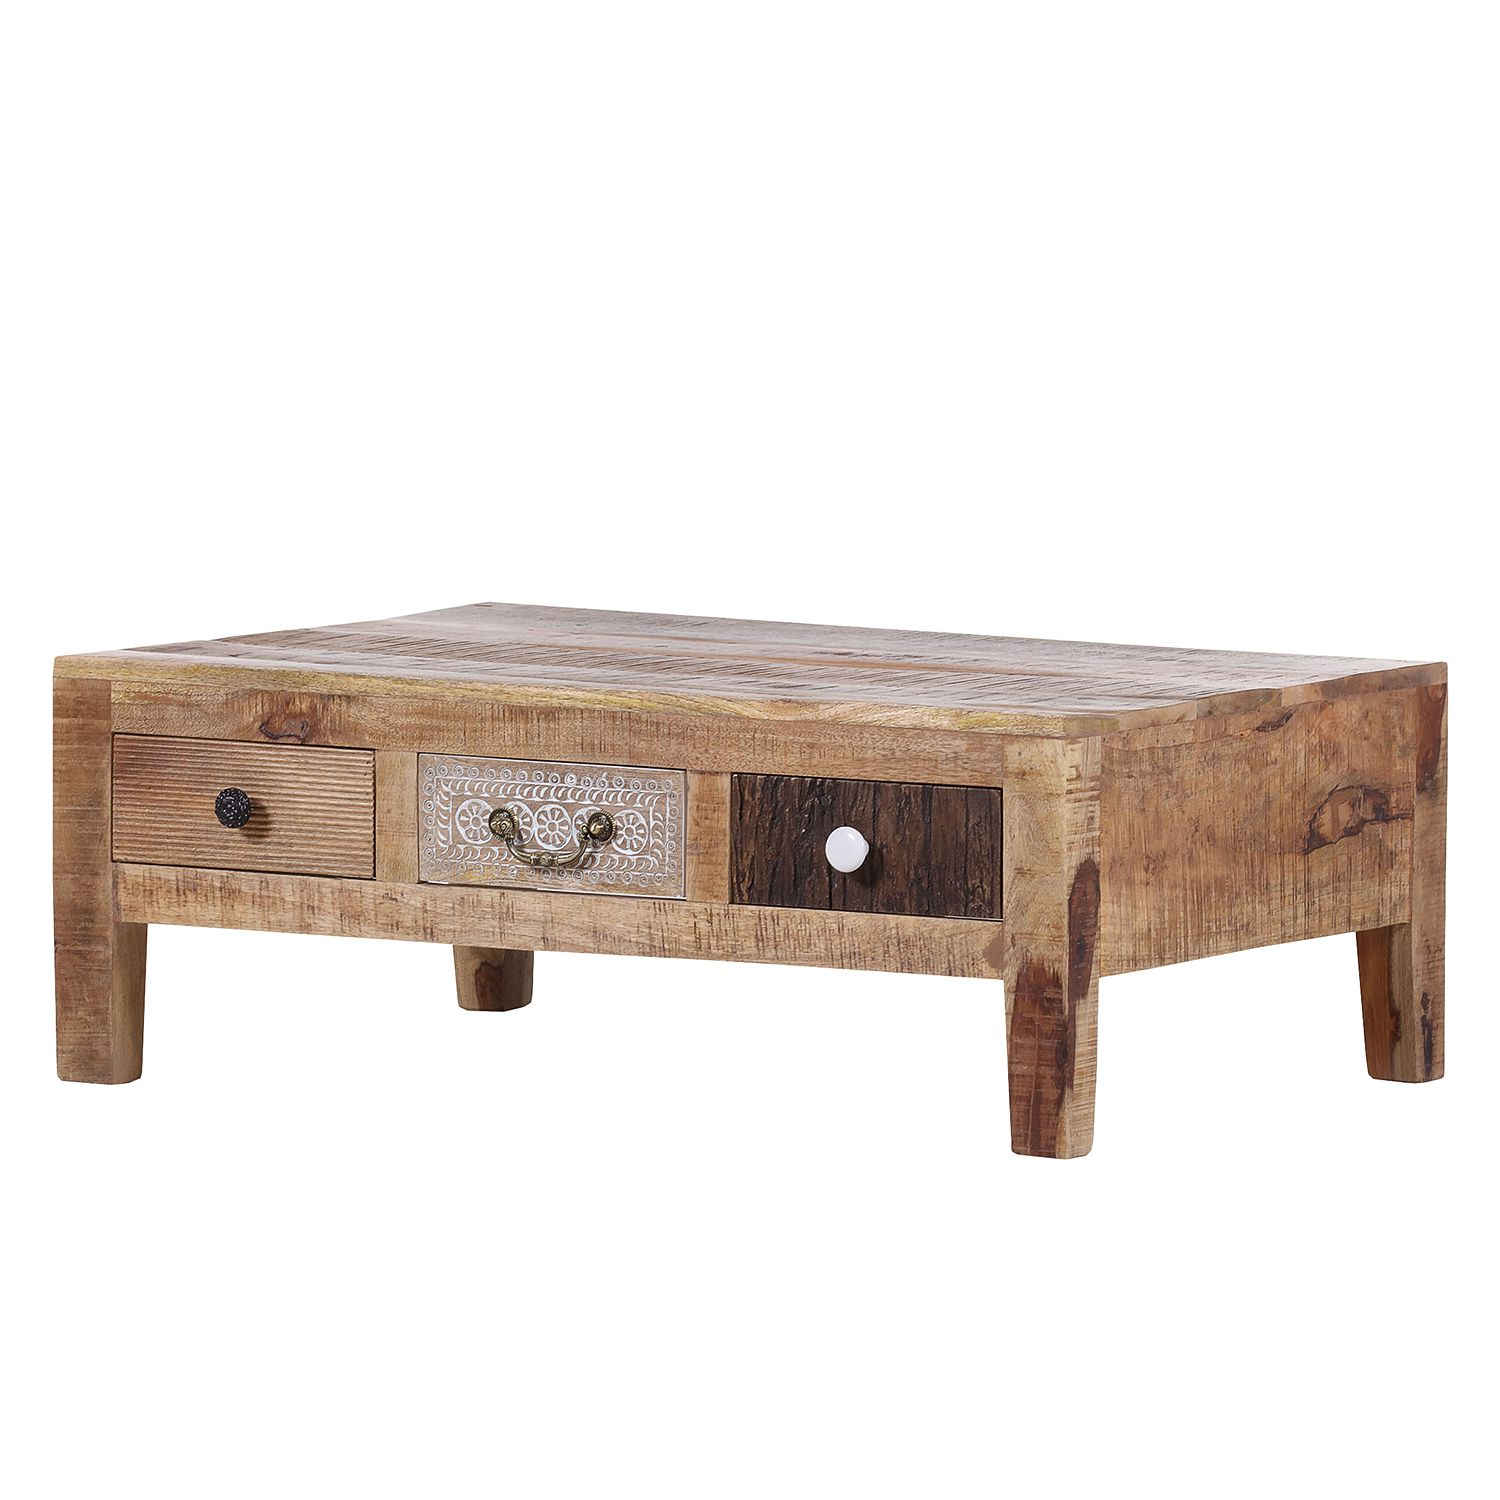 Table basse Curenna